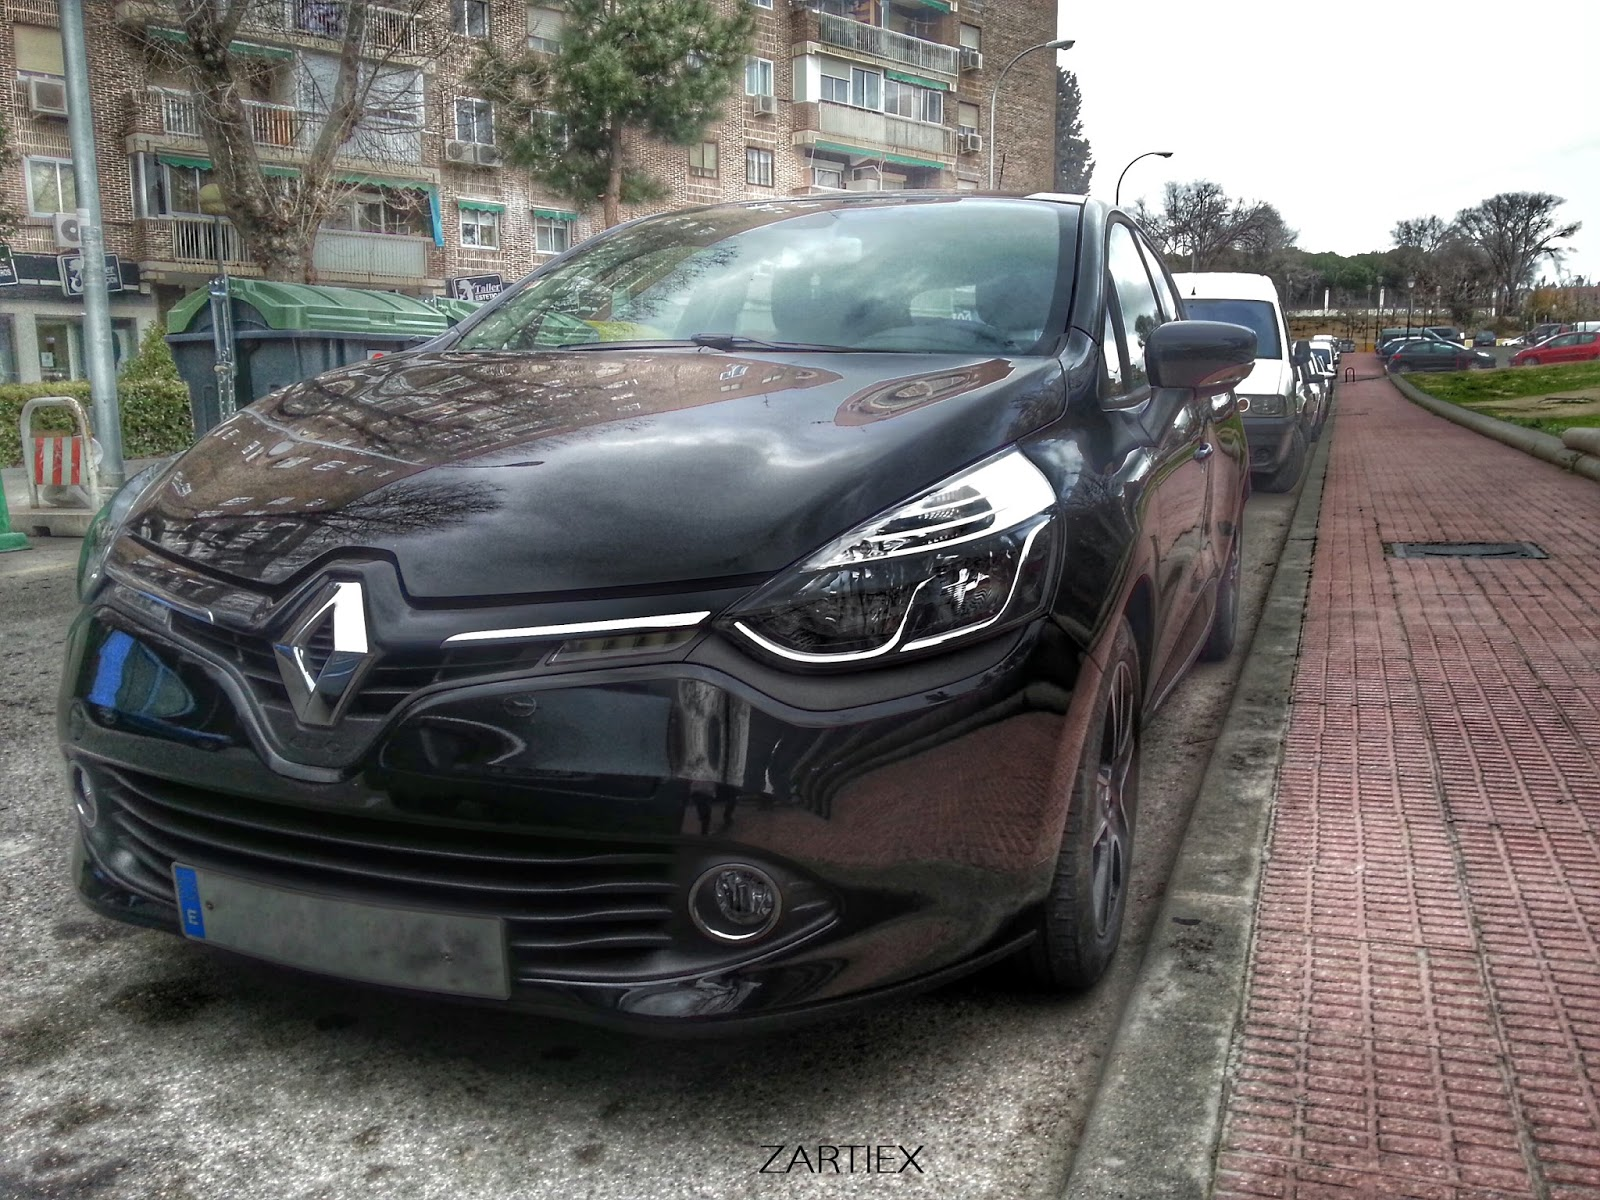 Renault Clio Dci 90 Cv - Stock Photos HDR 2014